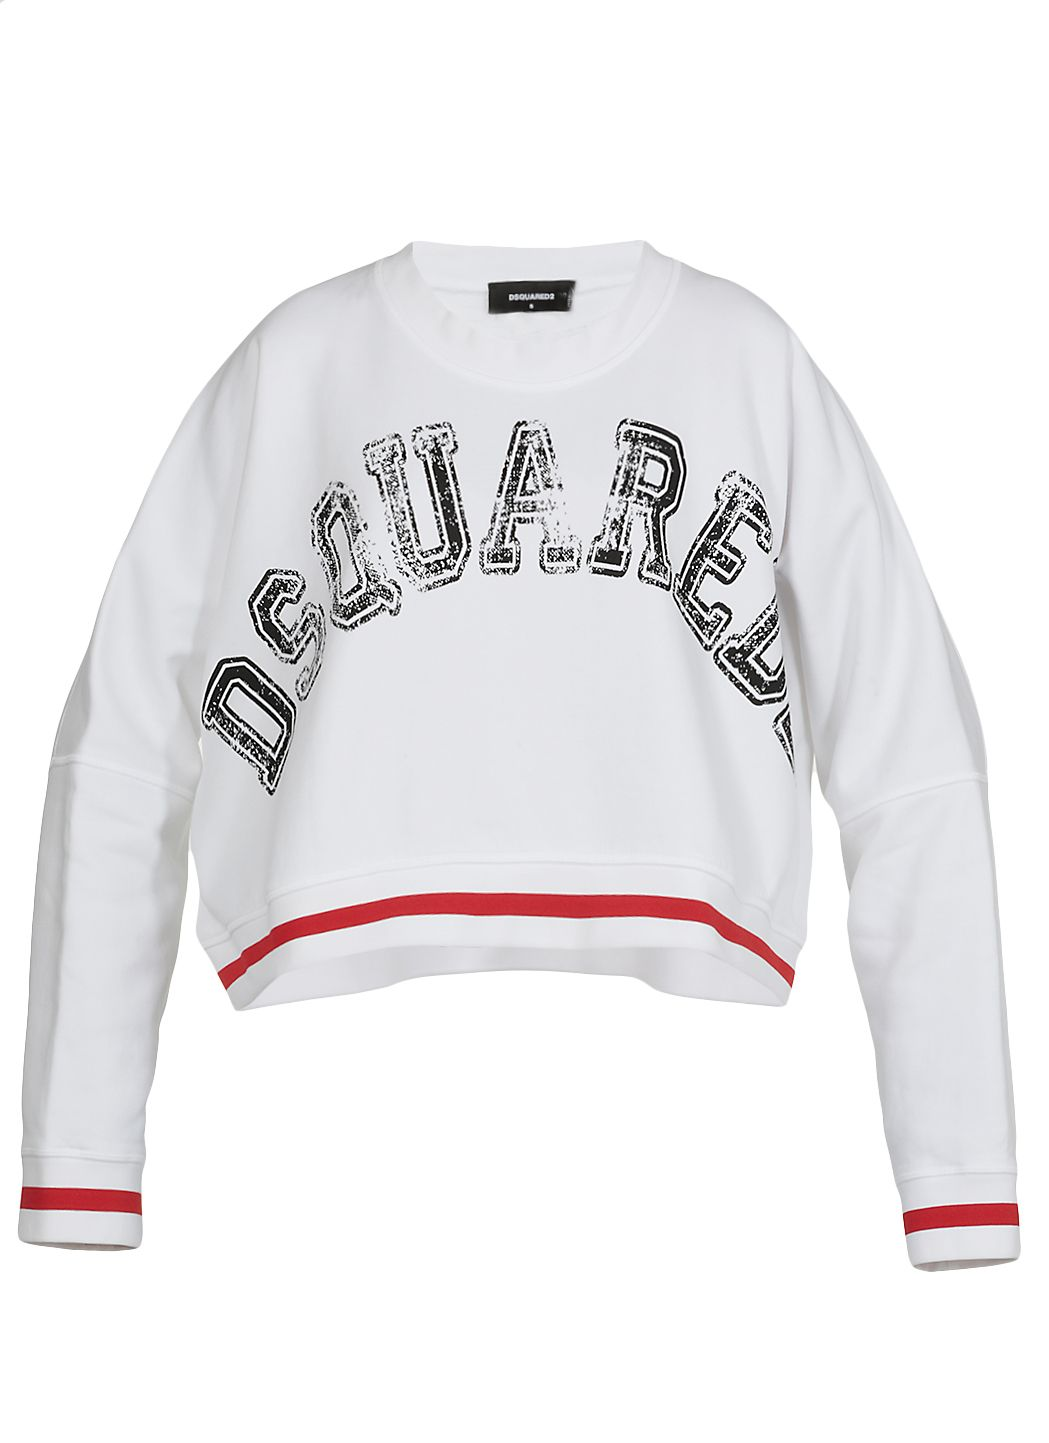 Dsquared2 sweathirt